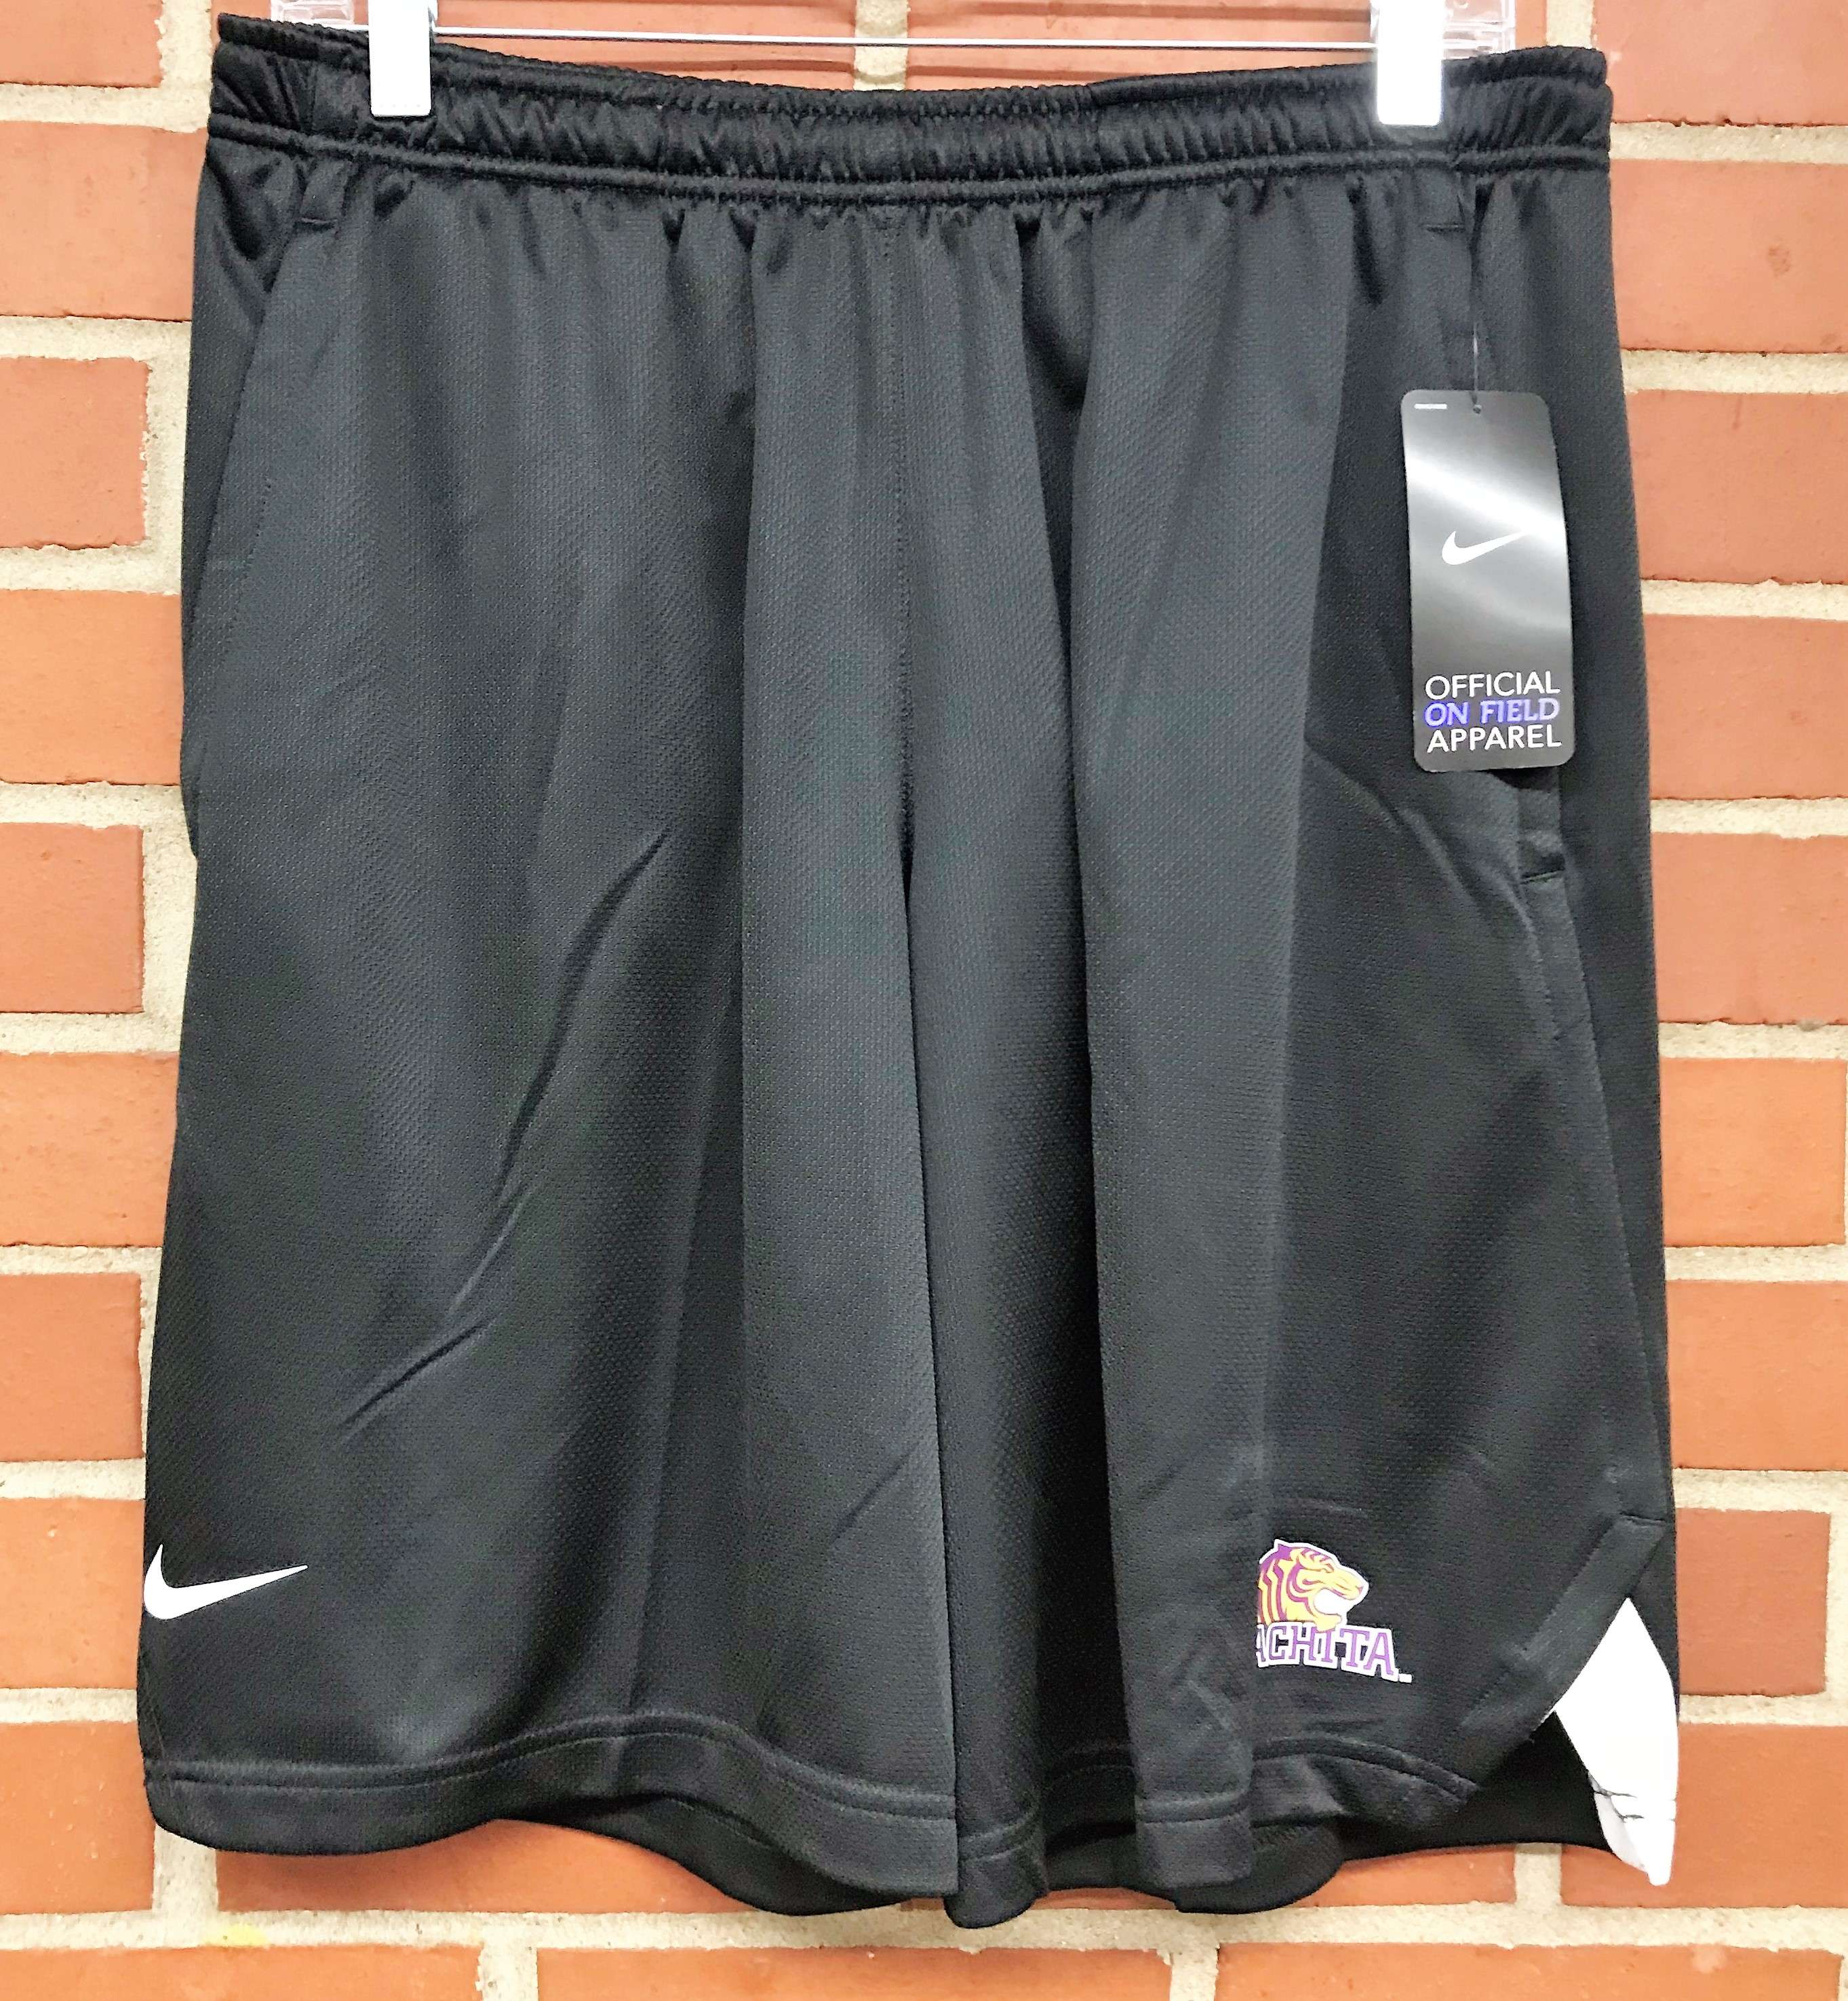 OUACHITA NIKE KNIT SHORT